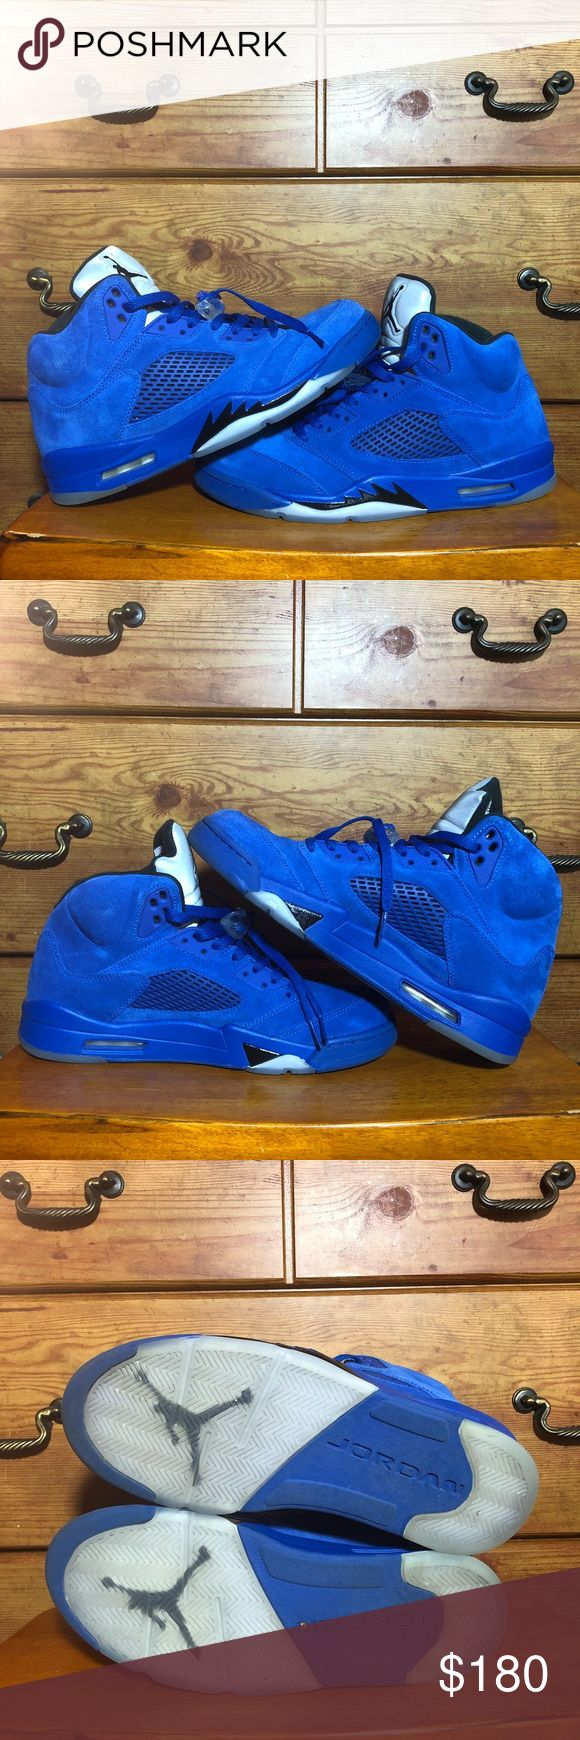 "JORDAN 5 V RETRO SZ 10.5 GAME ROYAL BLUE SUEDE AIR JORDAN 5 V RETRO  "" FLIGHT SUIT "" • STYLE CODE: 136027 401 • COLOR: GAME ROYAL BLUE SUEDE BLACK SILVER • SIZE: MEN 10.5 USED With Box CONDITION: 10/10 *great condition only worn a few times*   Ships same day as purchase Jordan Shoes Sneakers"